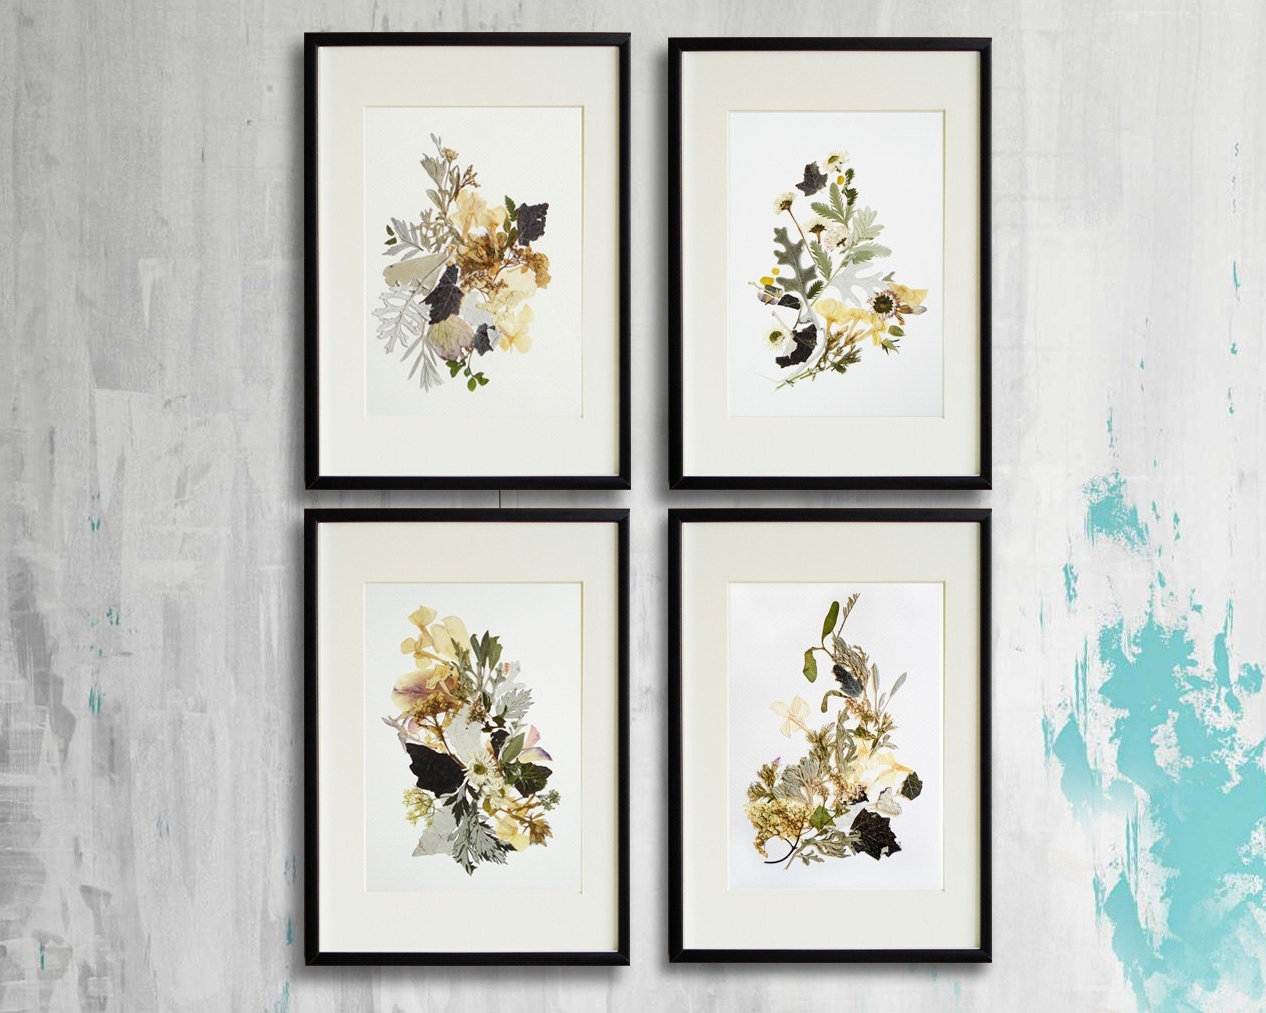 Floral & Plant Wall Art In Recent Set Of 4 Framed Prints Plant Art Contemporary Art Dry Flower Decor (View 5 of 15)